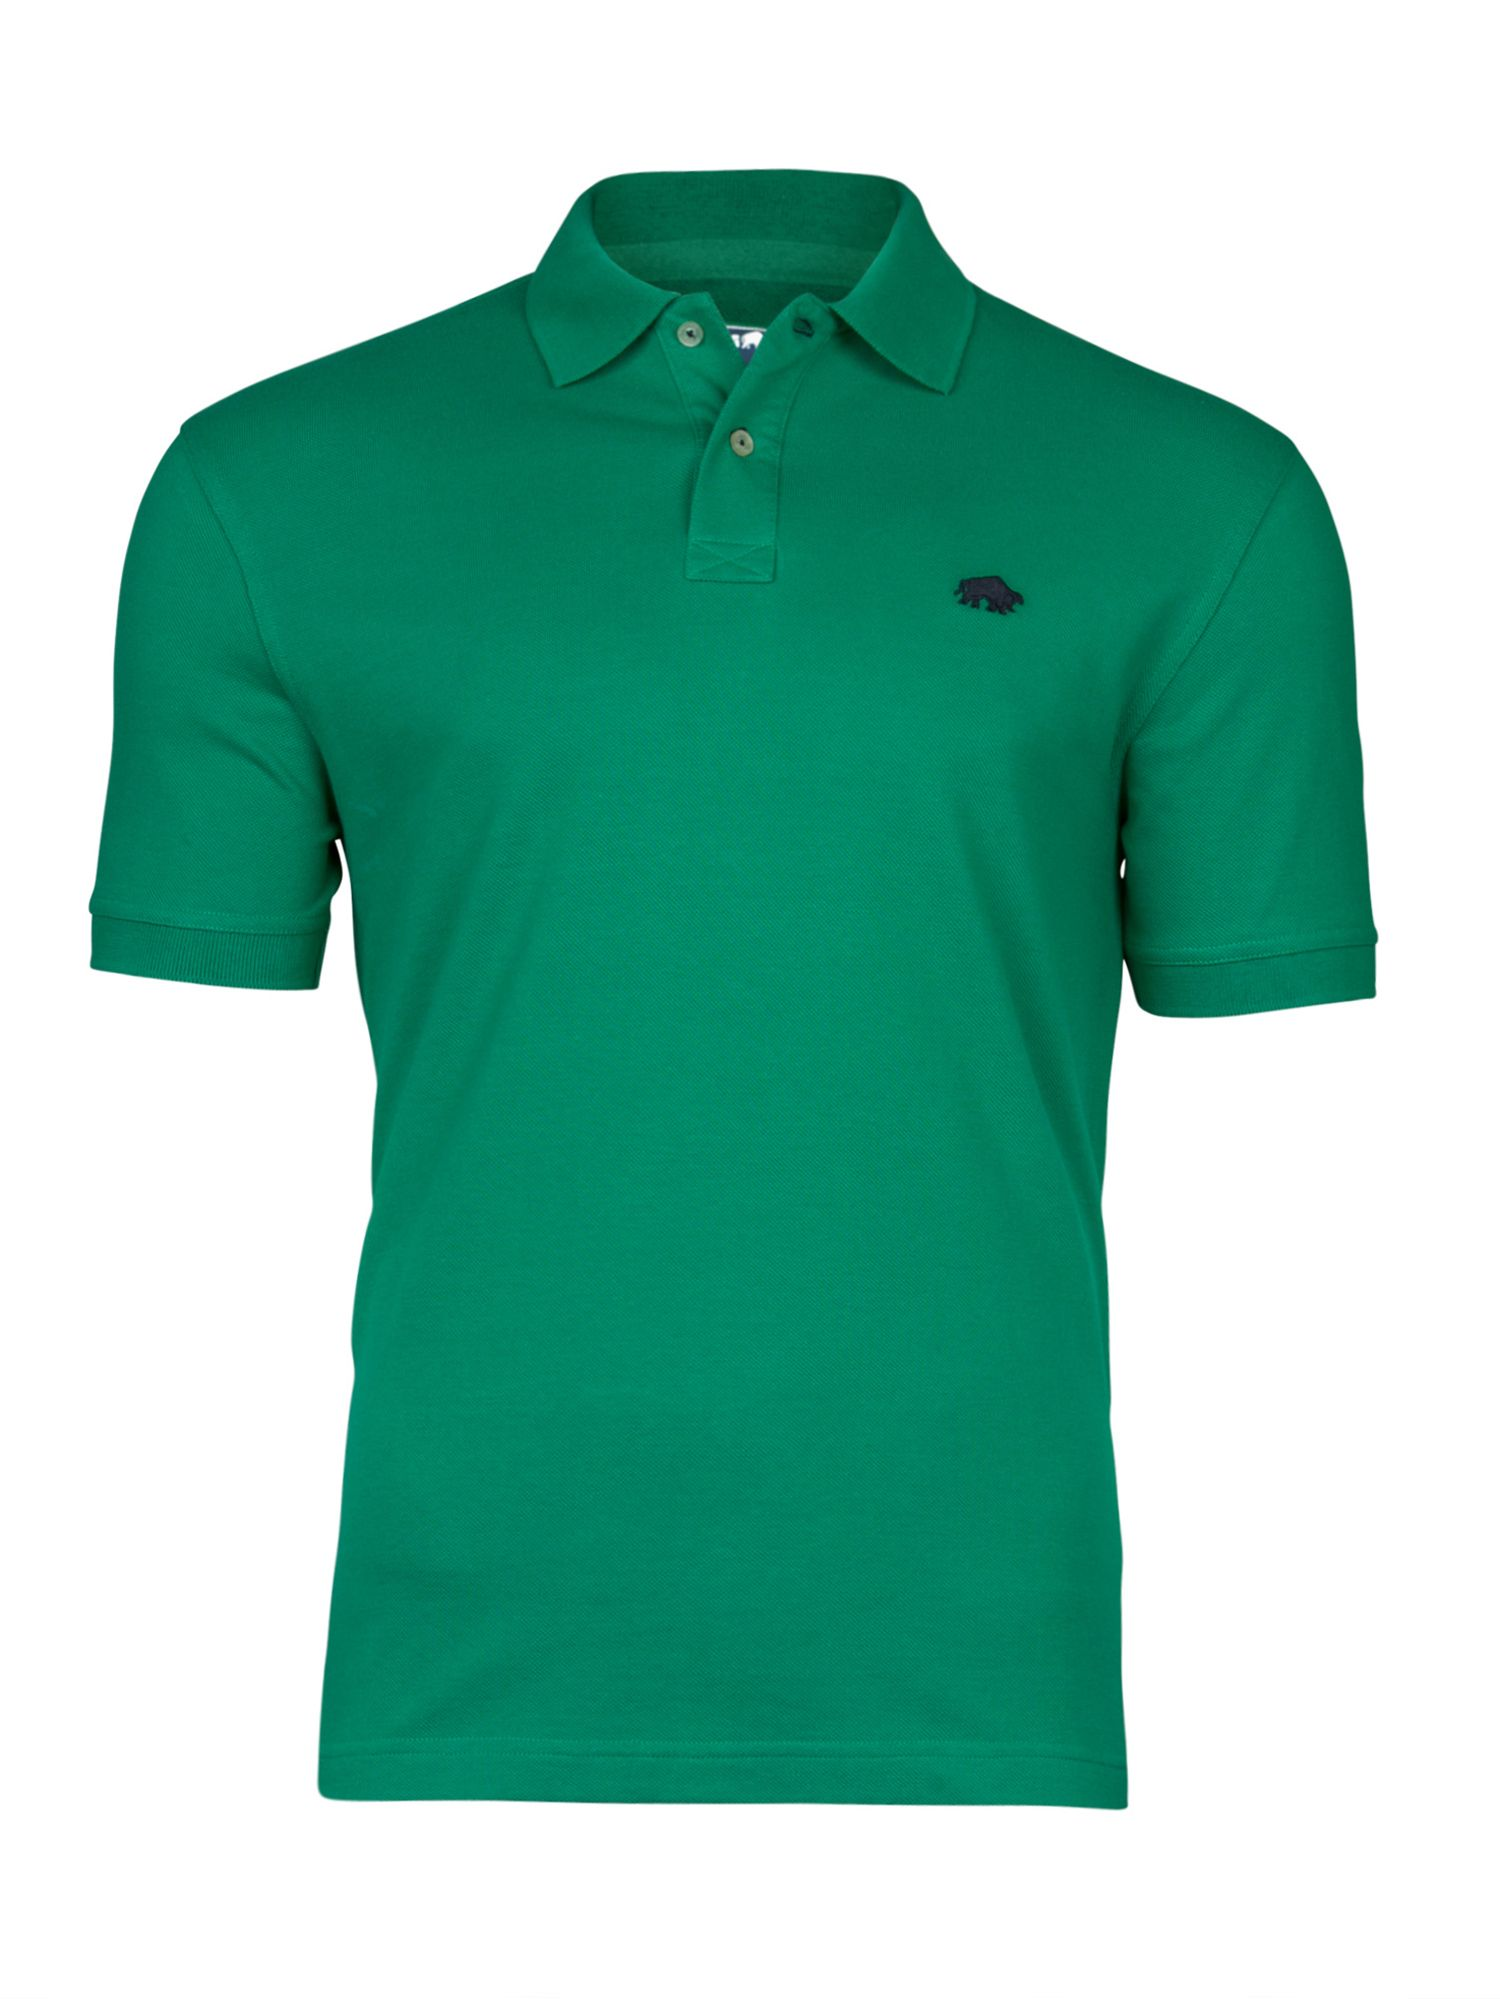 Men's Raging Bull New Signature Polo, Green